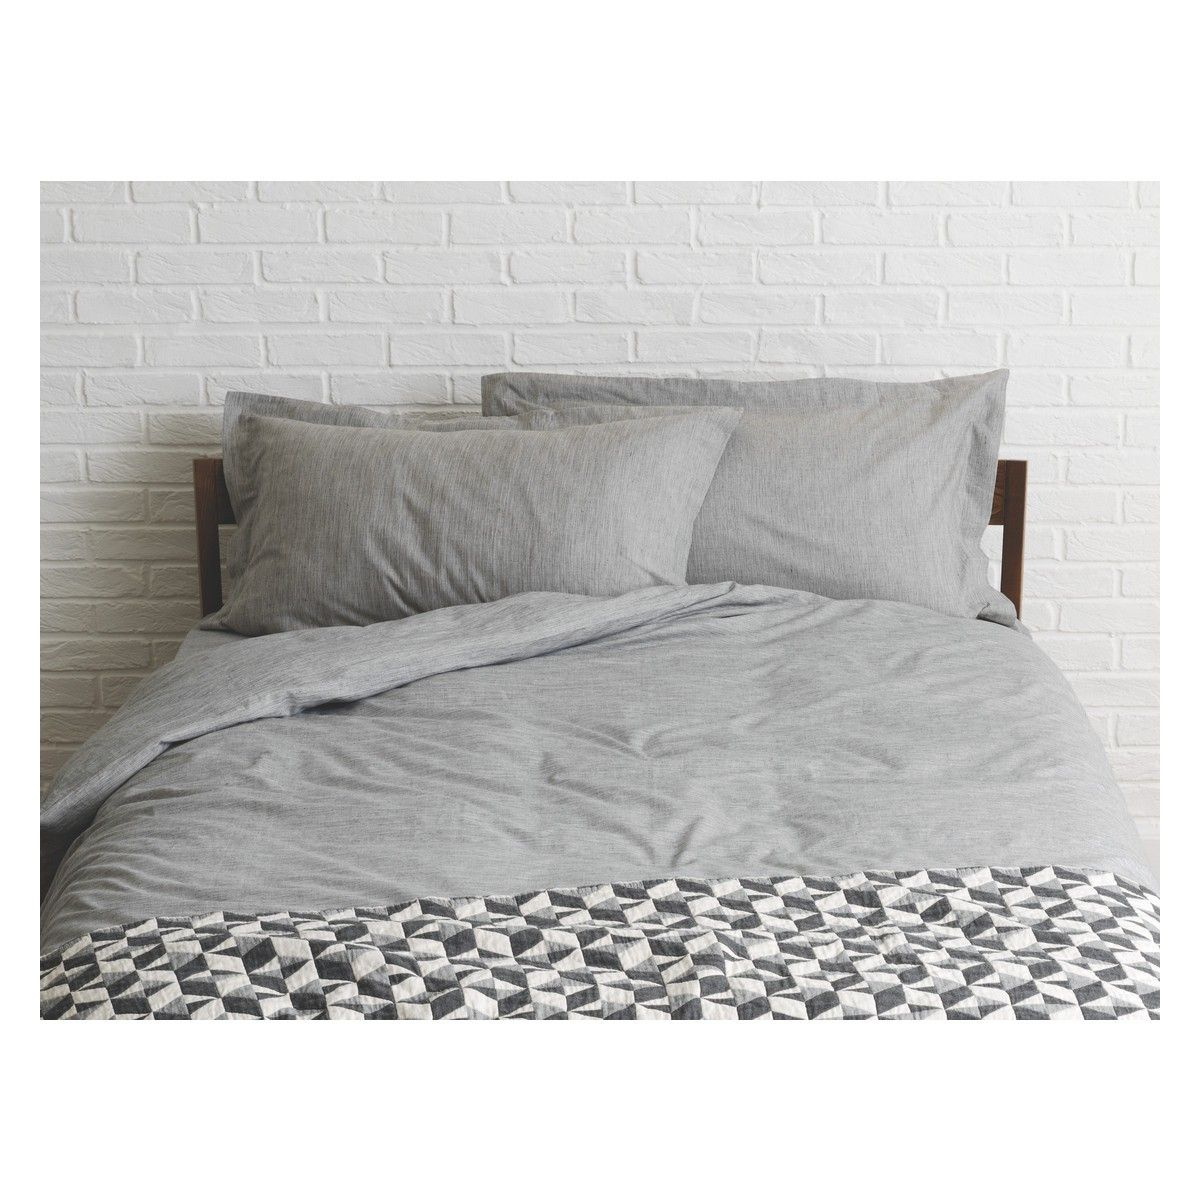 Skye Grey Egyptian Cotton Kingsize Duvet Cover Now At Habitat Uk